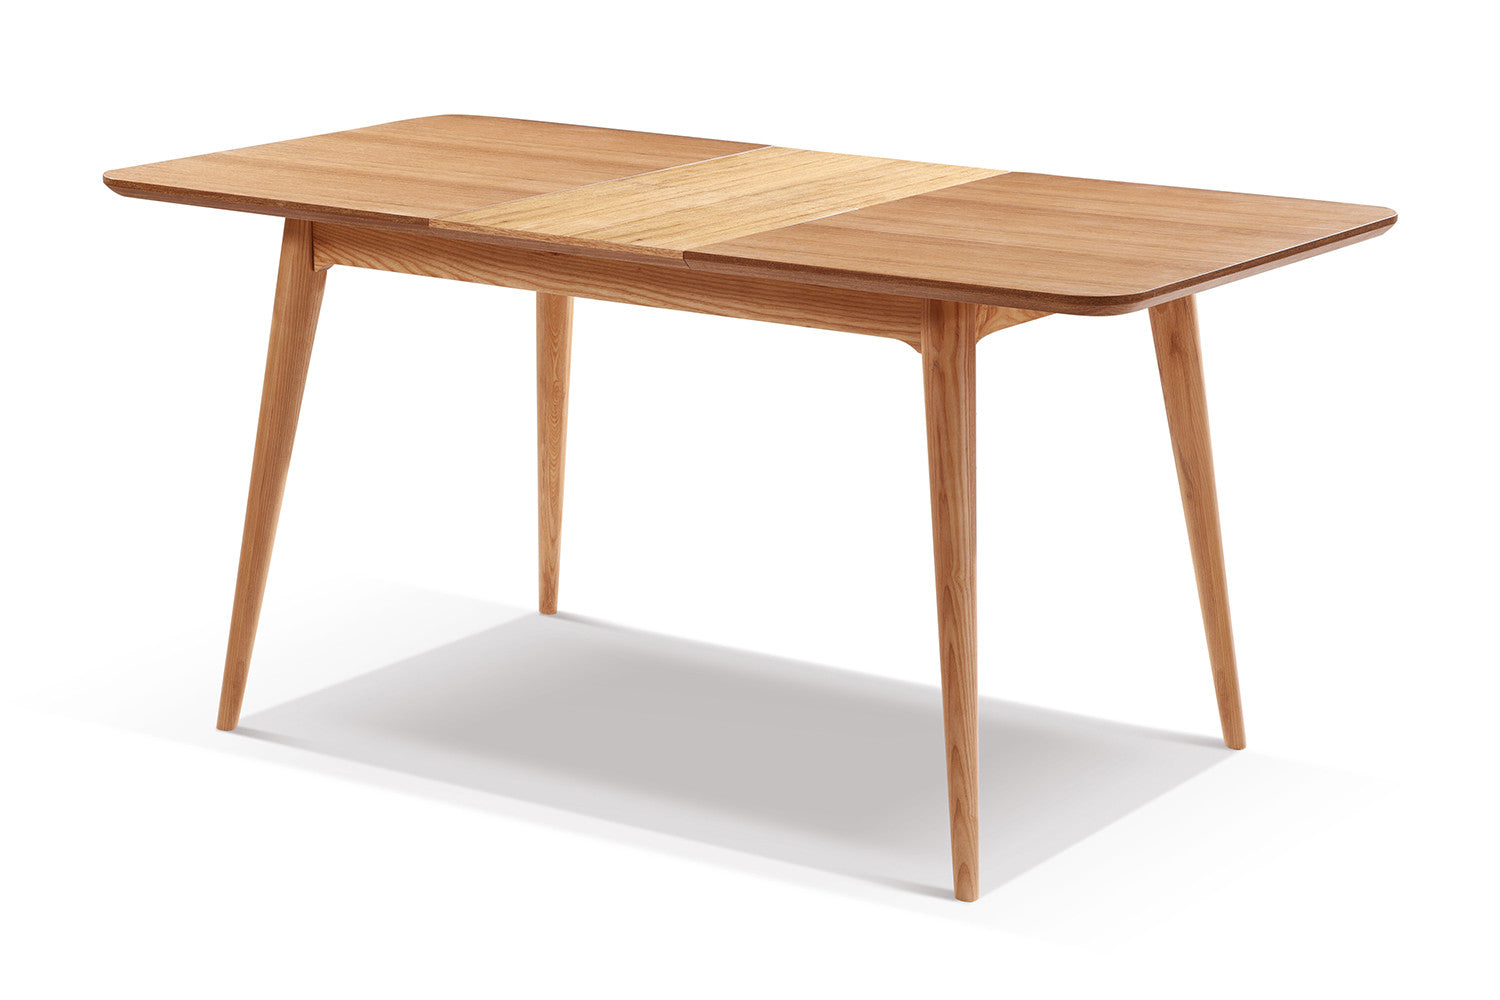 Table de salle manger extensible en bois adda dewarens for Table salle a manger contemporaine extensible